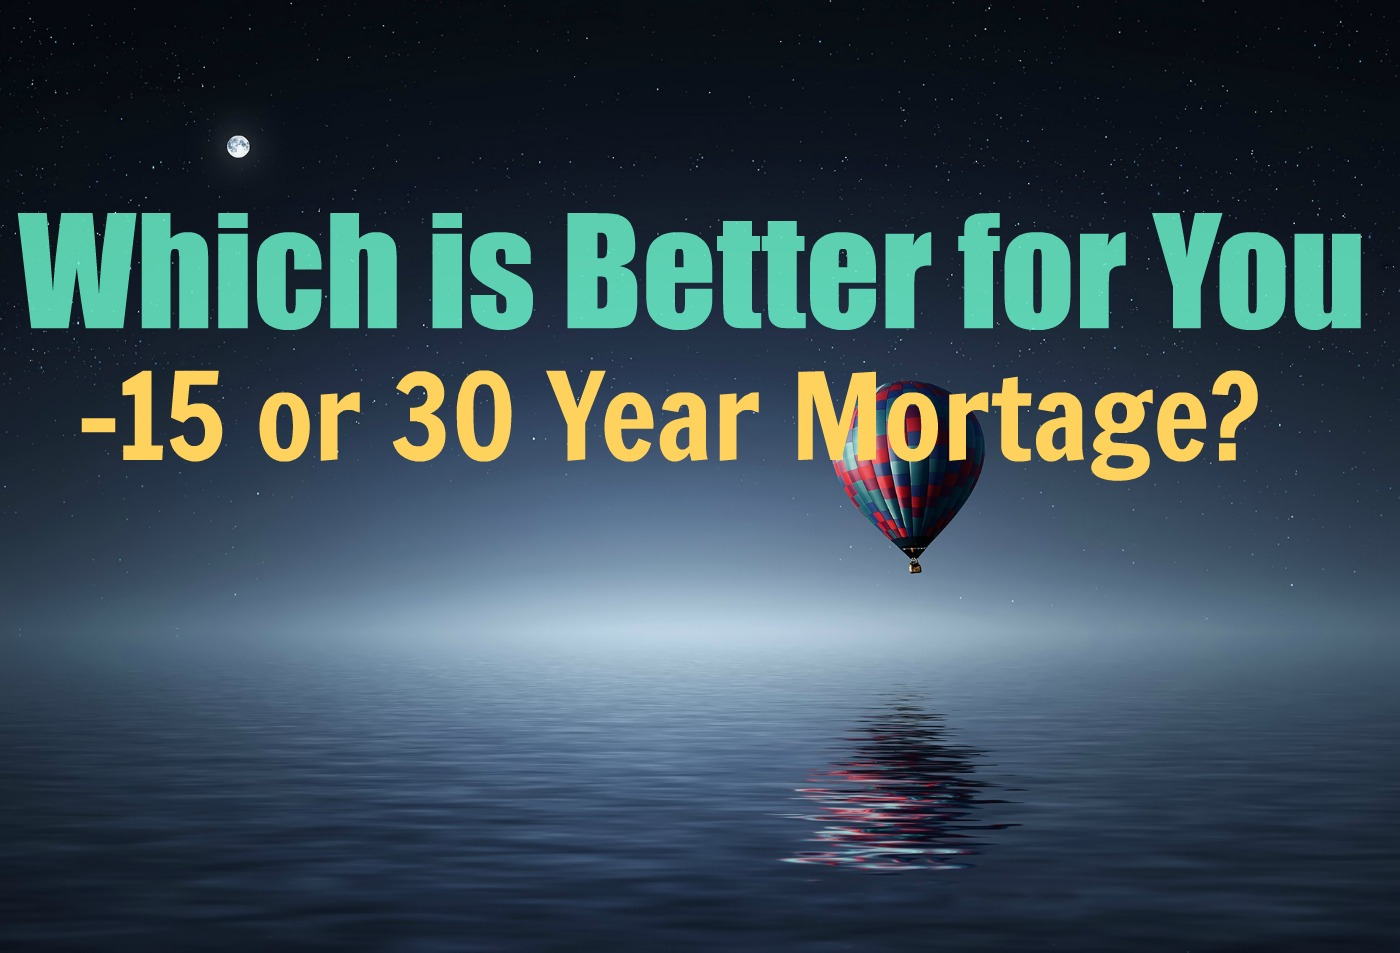 Find out how you two can pick the right mortgage terms (15 vs 30 year fixed) for your situation.